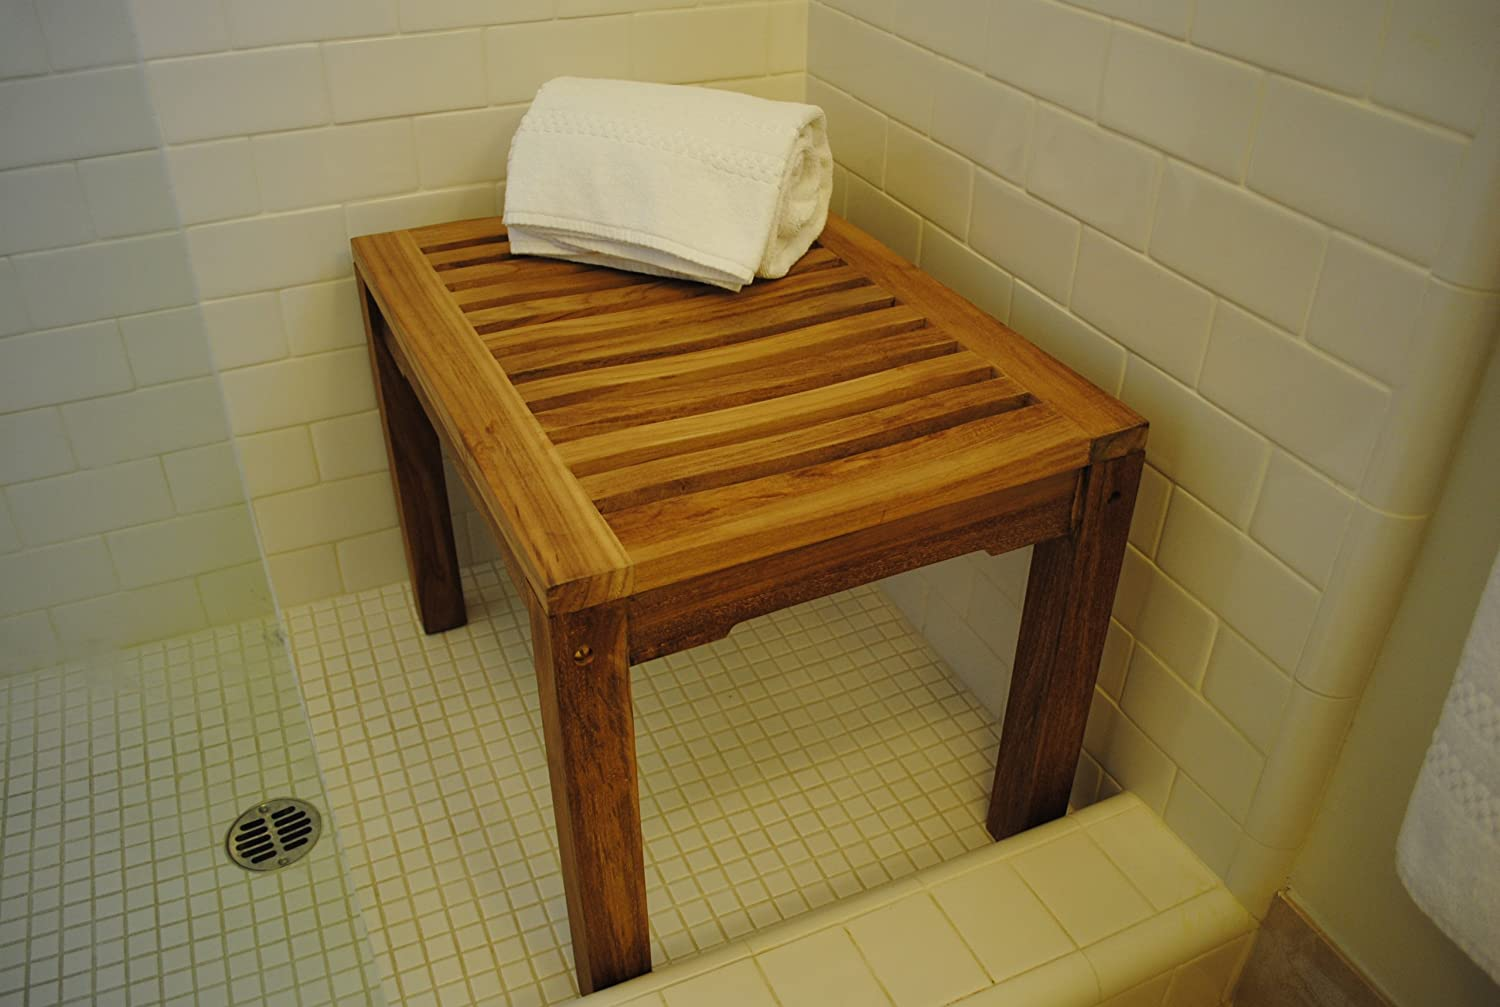 Amazon.com: New Grade A Teak Shower Bench - Sauna or Steamroom Stool ...